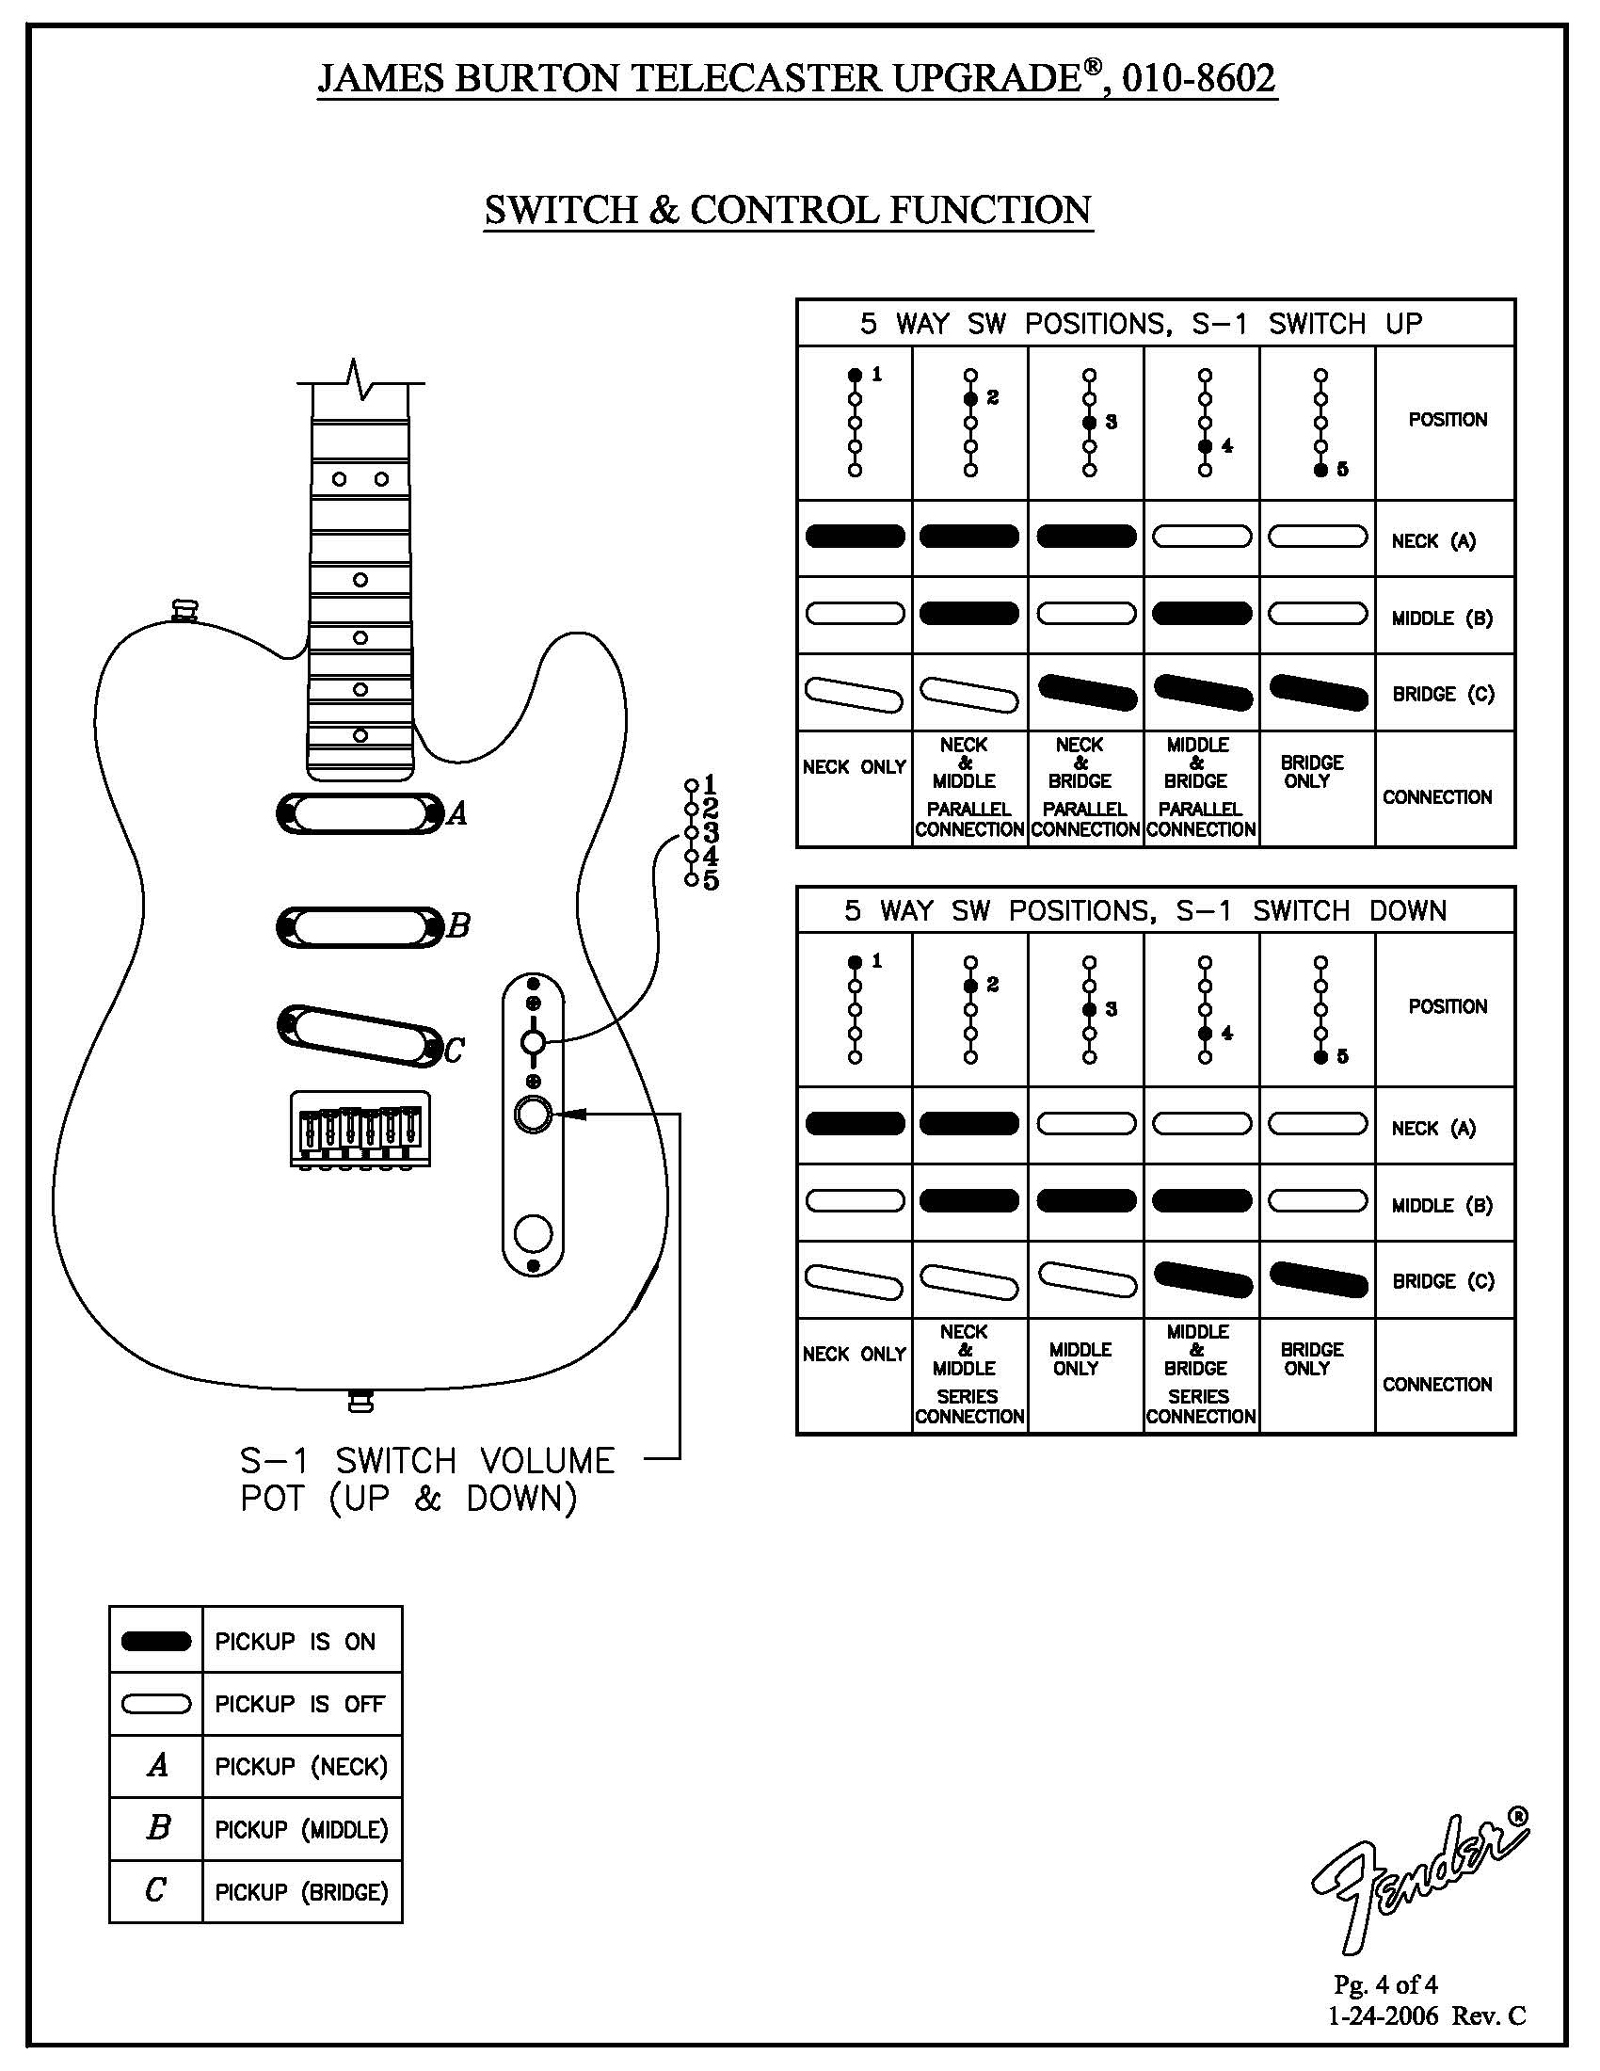 wiring diagrams nashville telecaster the wiring diagram fender tele s1 wiring diagram nilza wiring diagram